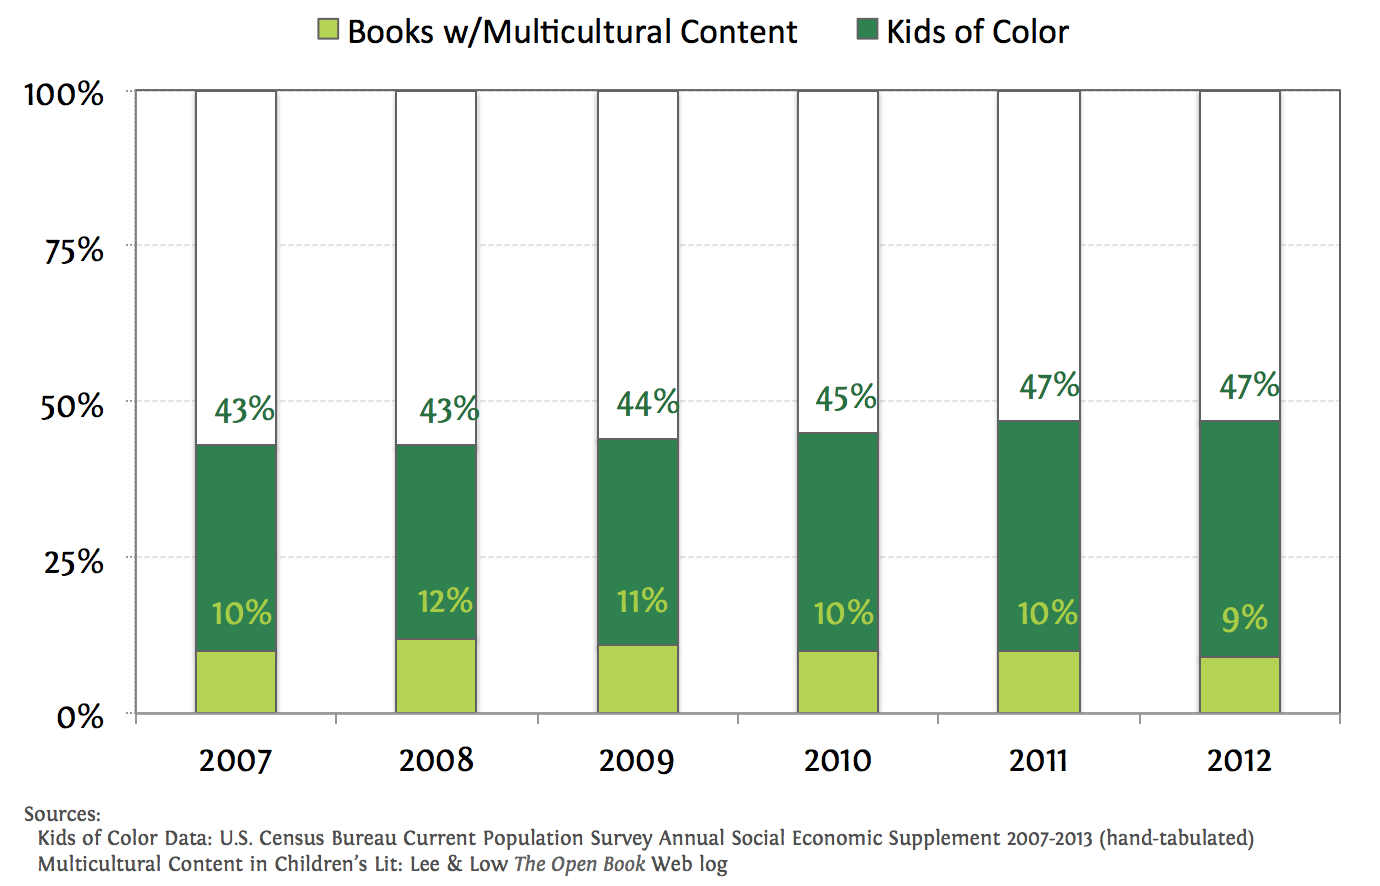 KidLit Books with Multicultural Content